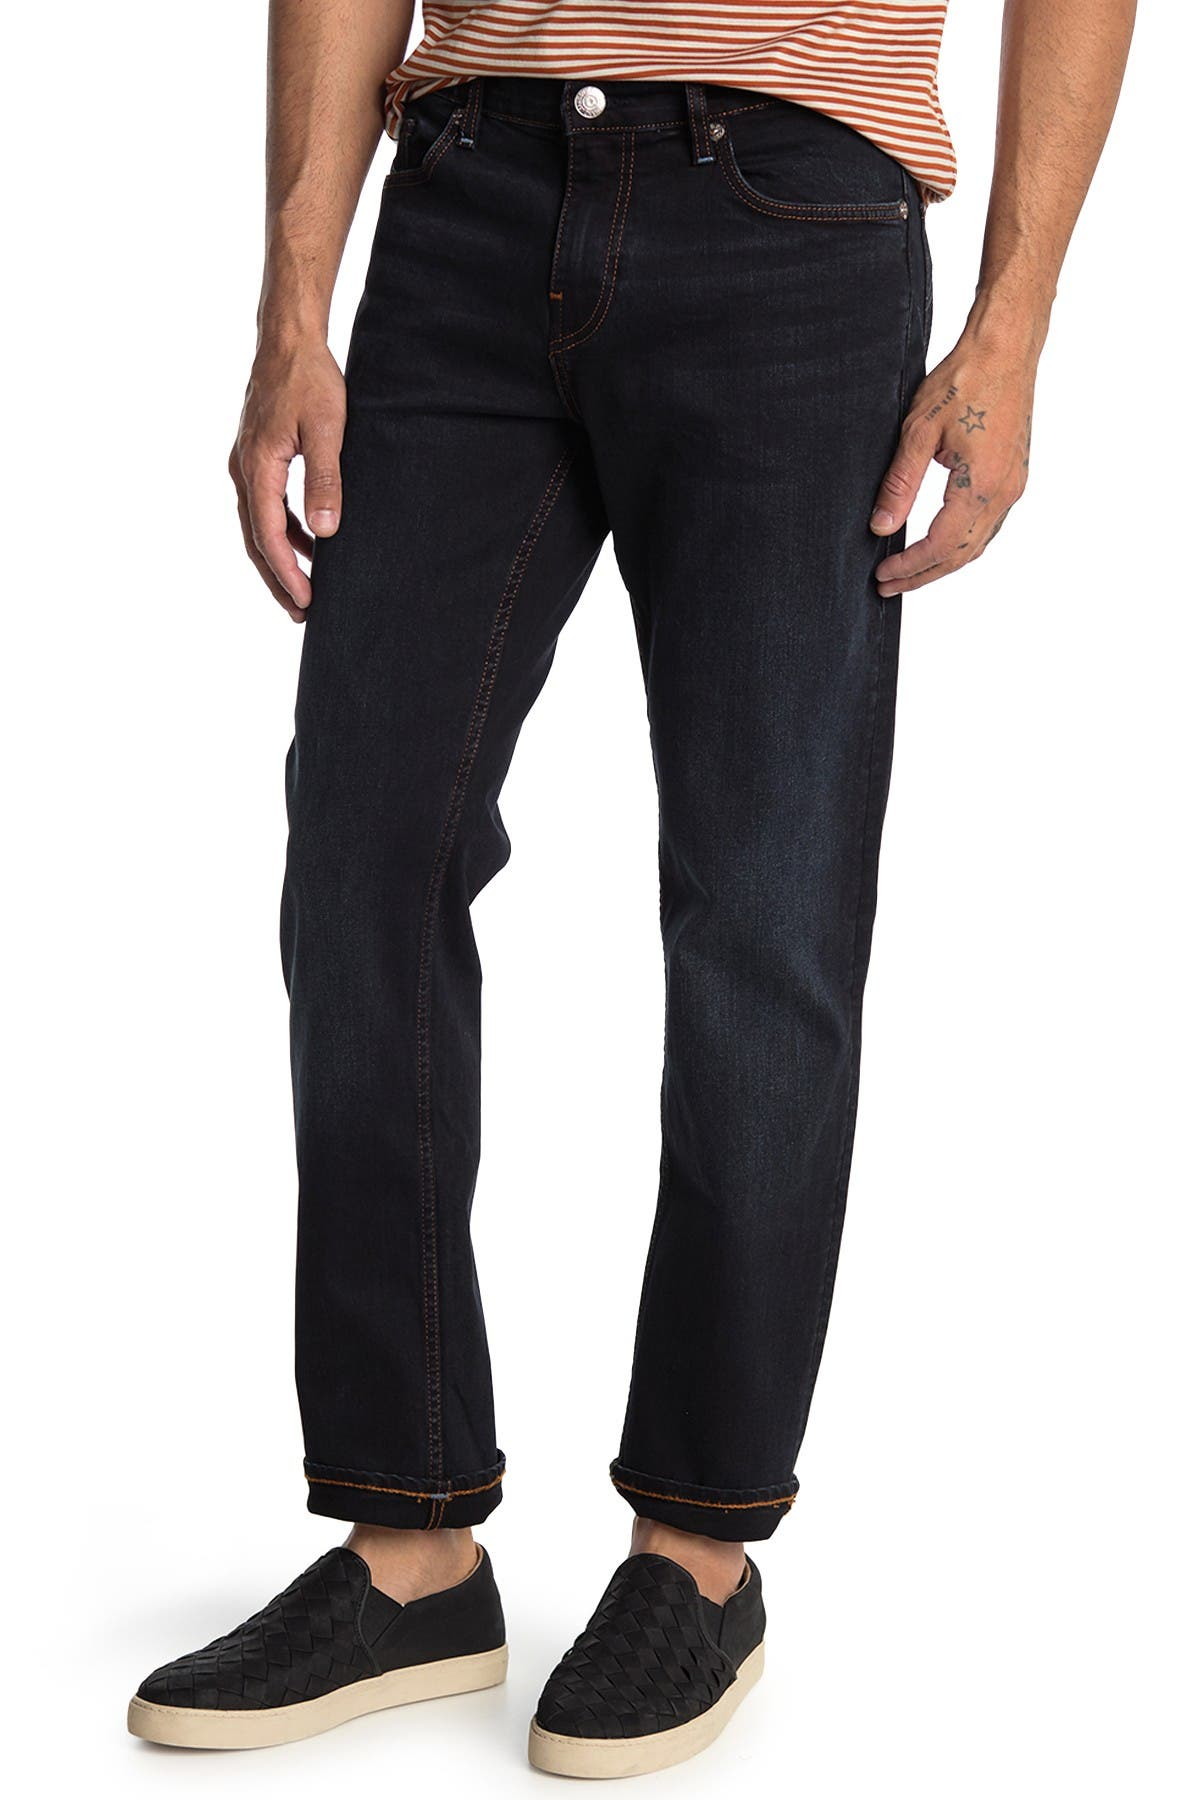 Image of True Religion Geno No Flap Straight Leg Jeans